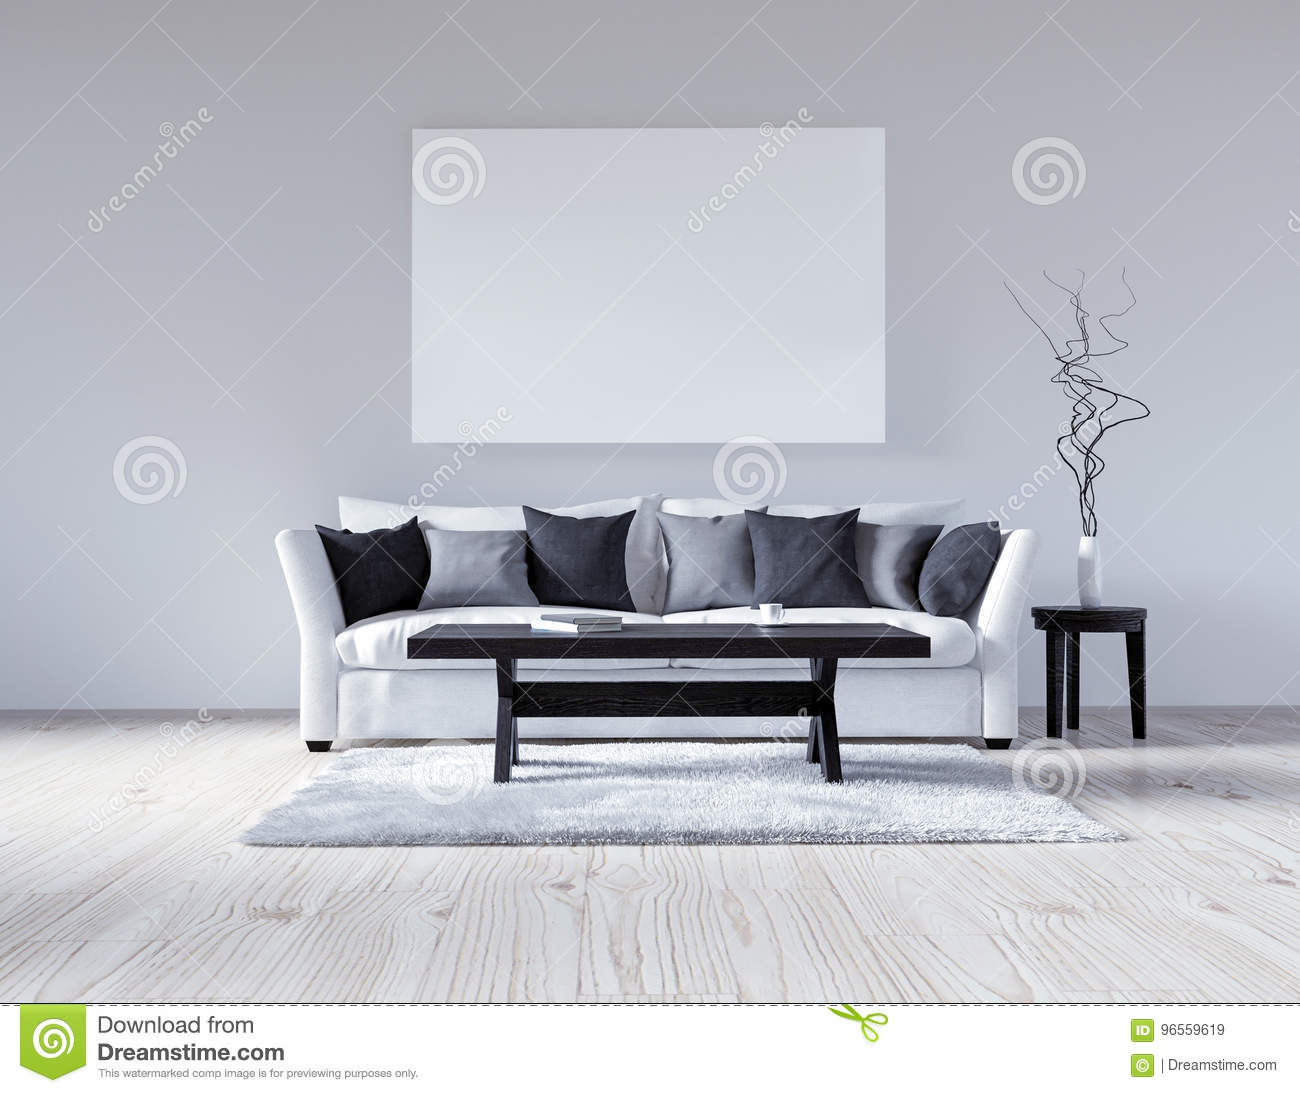 3d Illustration Empty White Interior With Sofa Empty Wall